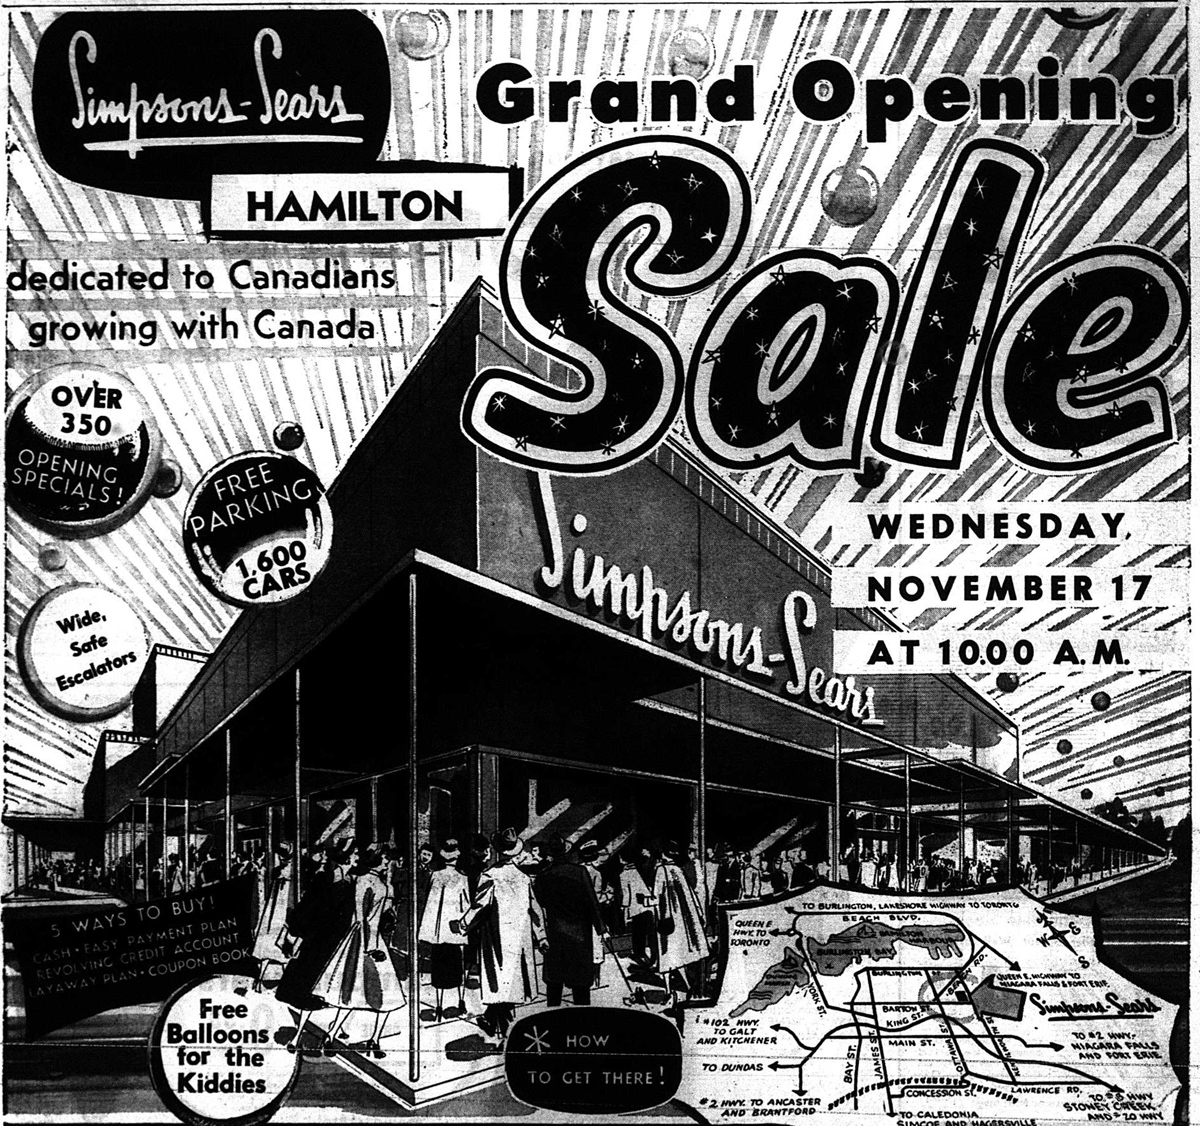 a sketch of a Sears ad from mid-20th century